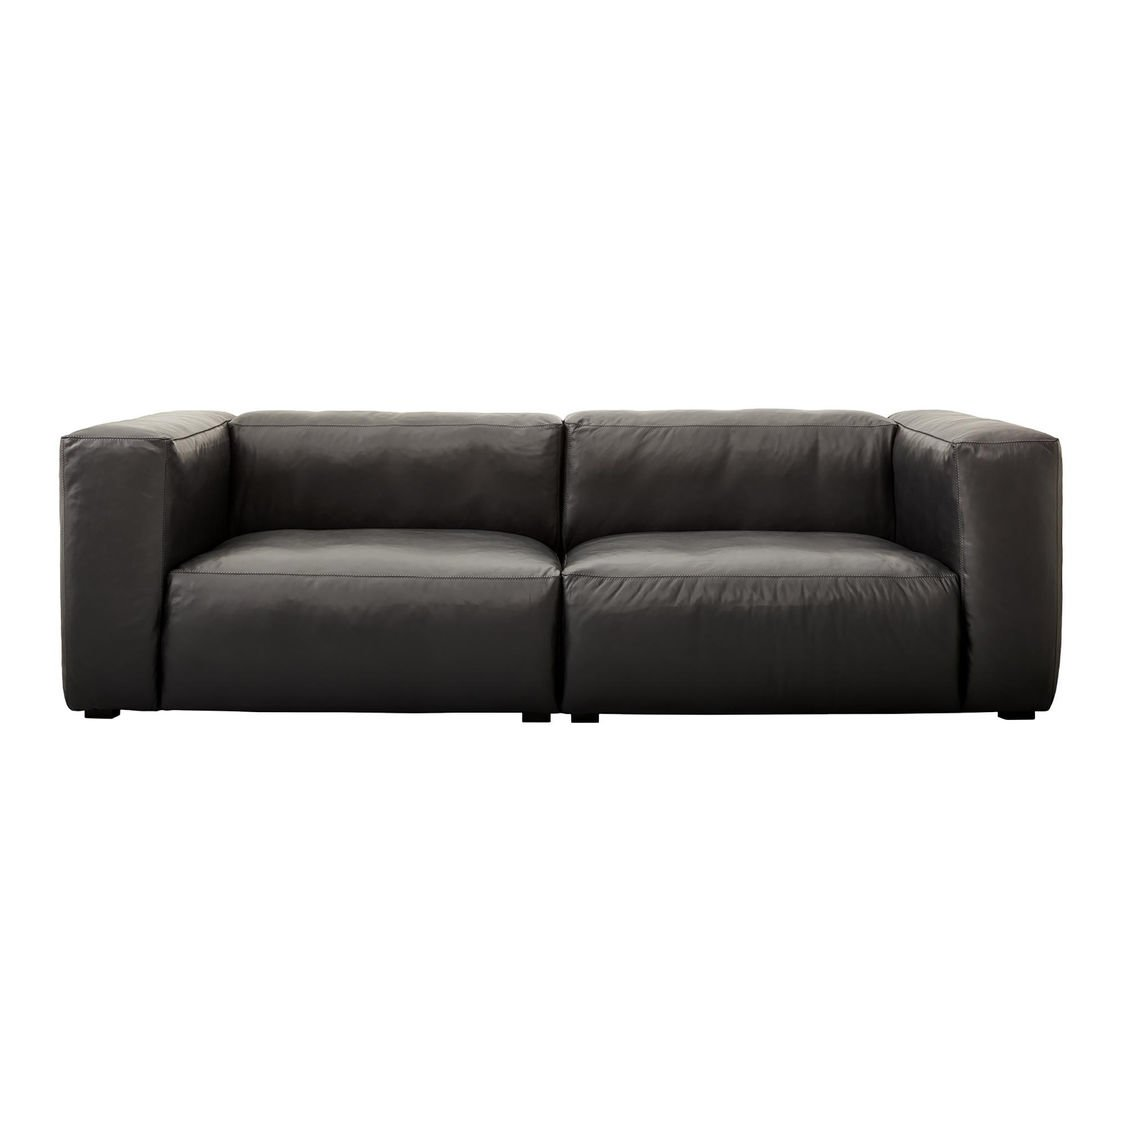 Mags Soft Leather Sofa 228x95.5x67cm